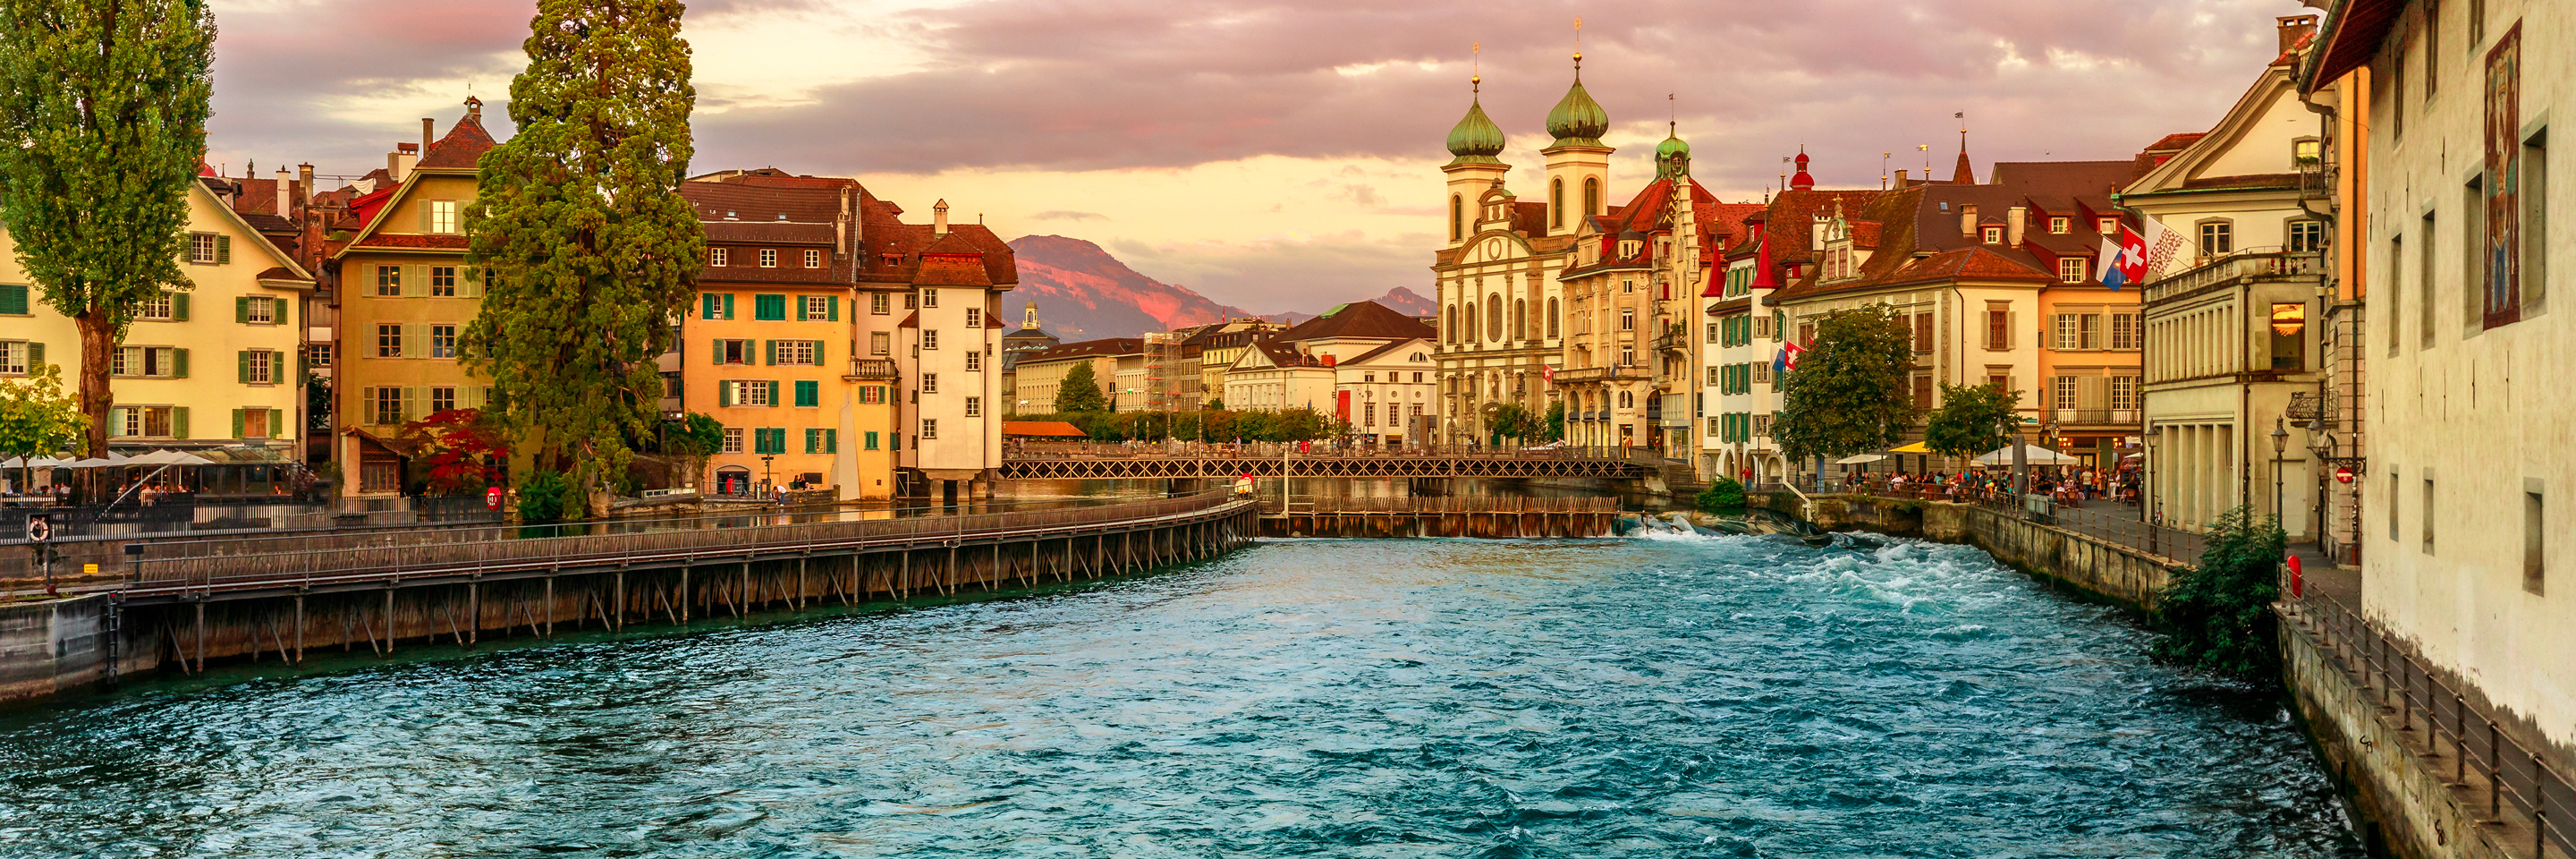 Enchanted Europe with 2 Nights in Lucerne (Eastbound)